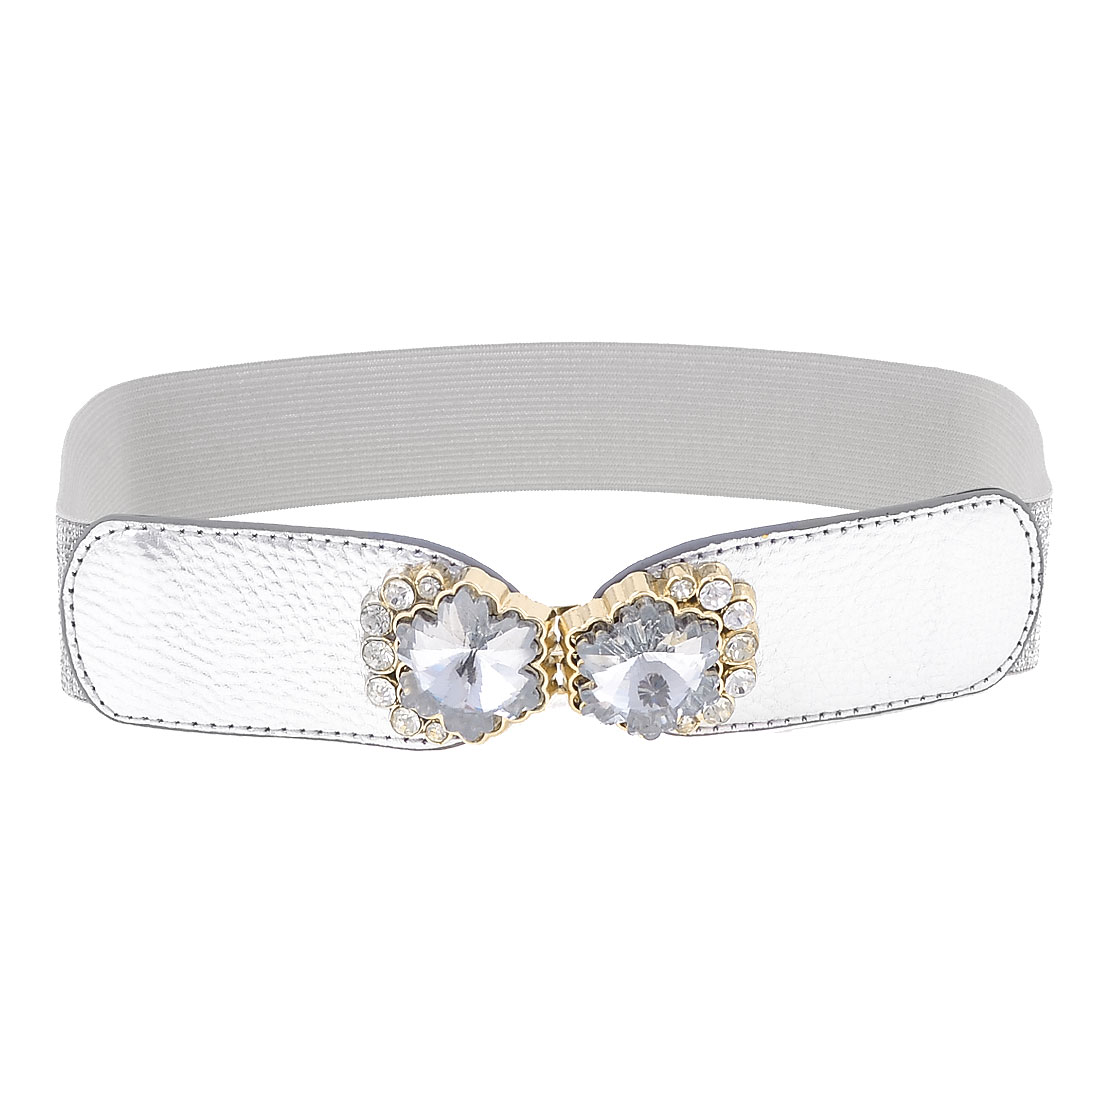 Rhinestone Interlock Buckle Stretchy Waist Belt Waistband 3.5CM Wide Silver Tone